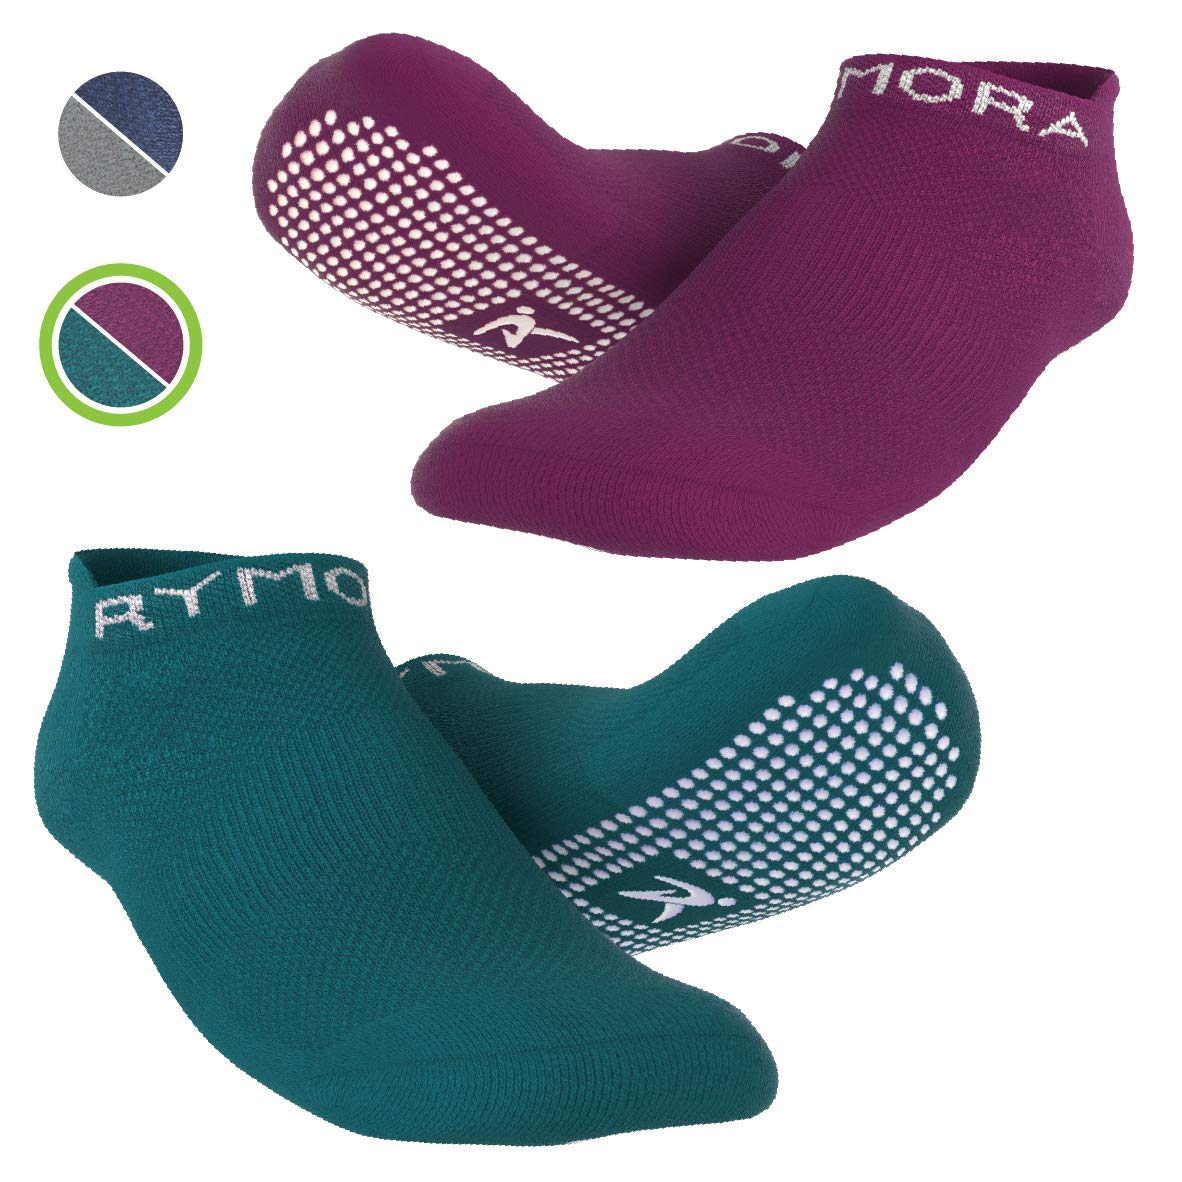 3c57a1e9132b5 Best Rated in Women's Yoga Socks & Helpful Customer Reviews - Amazon.com